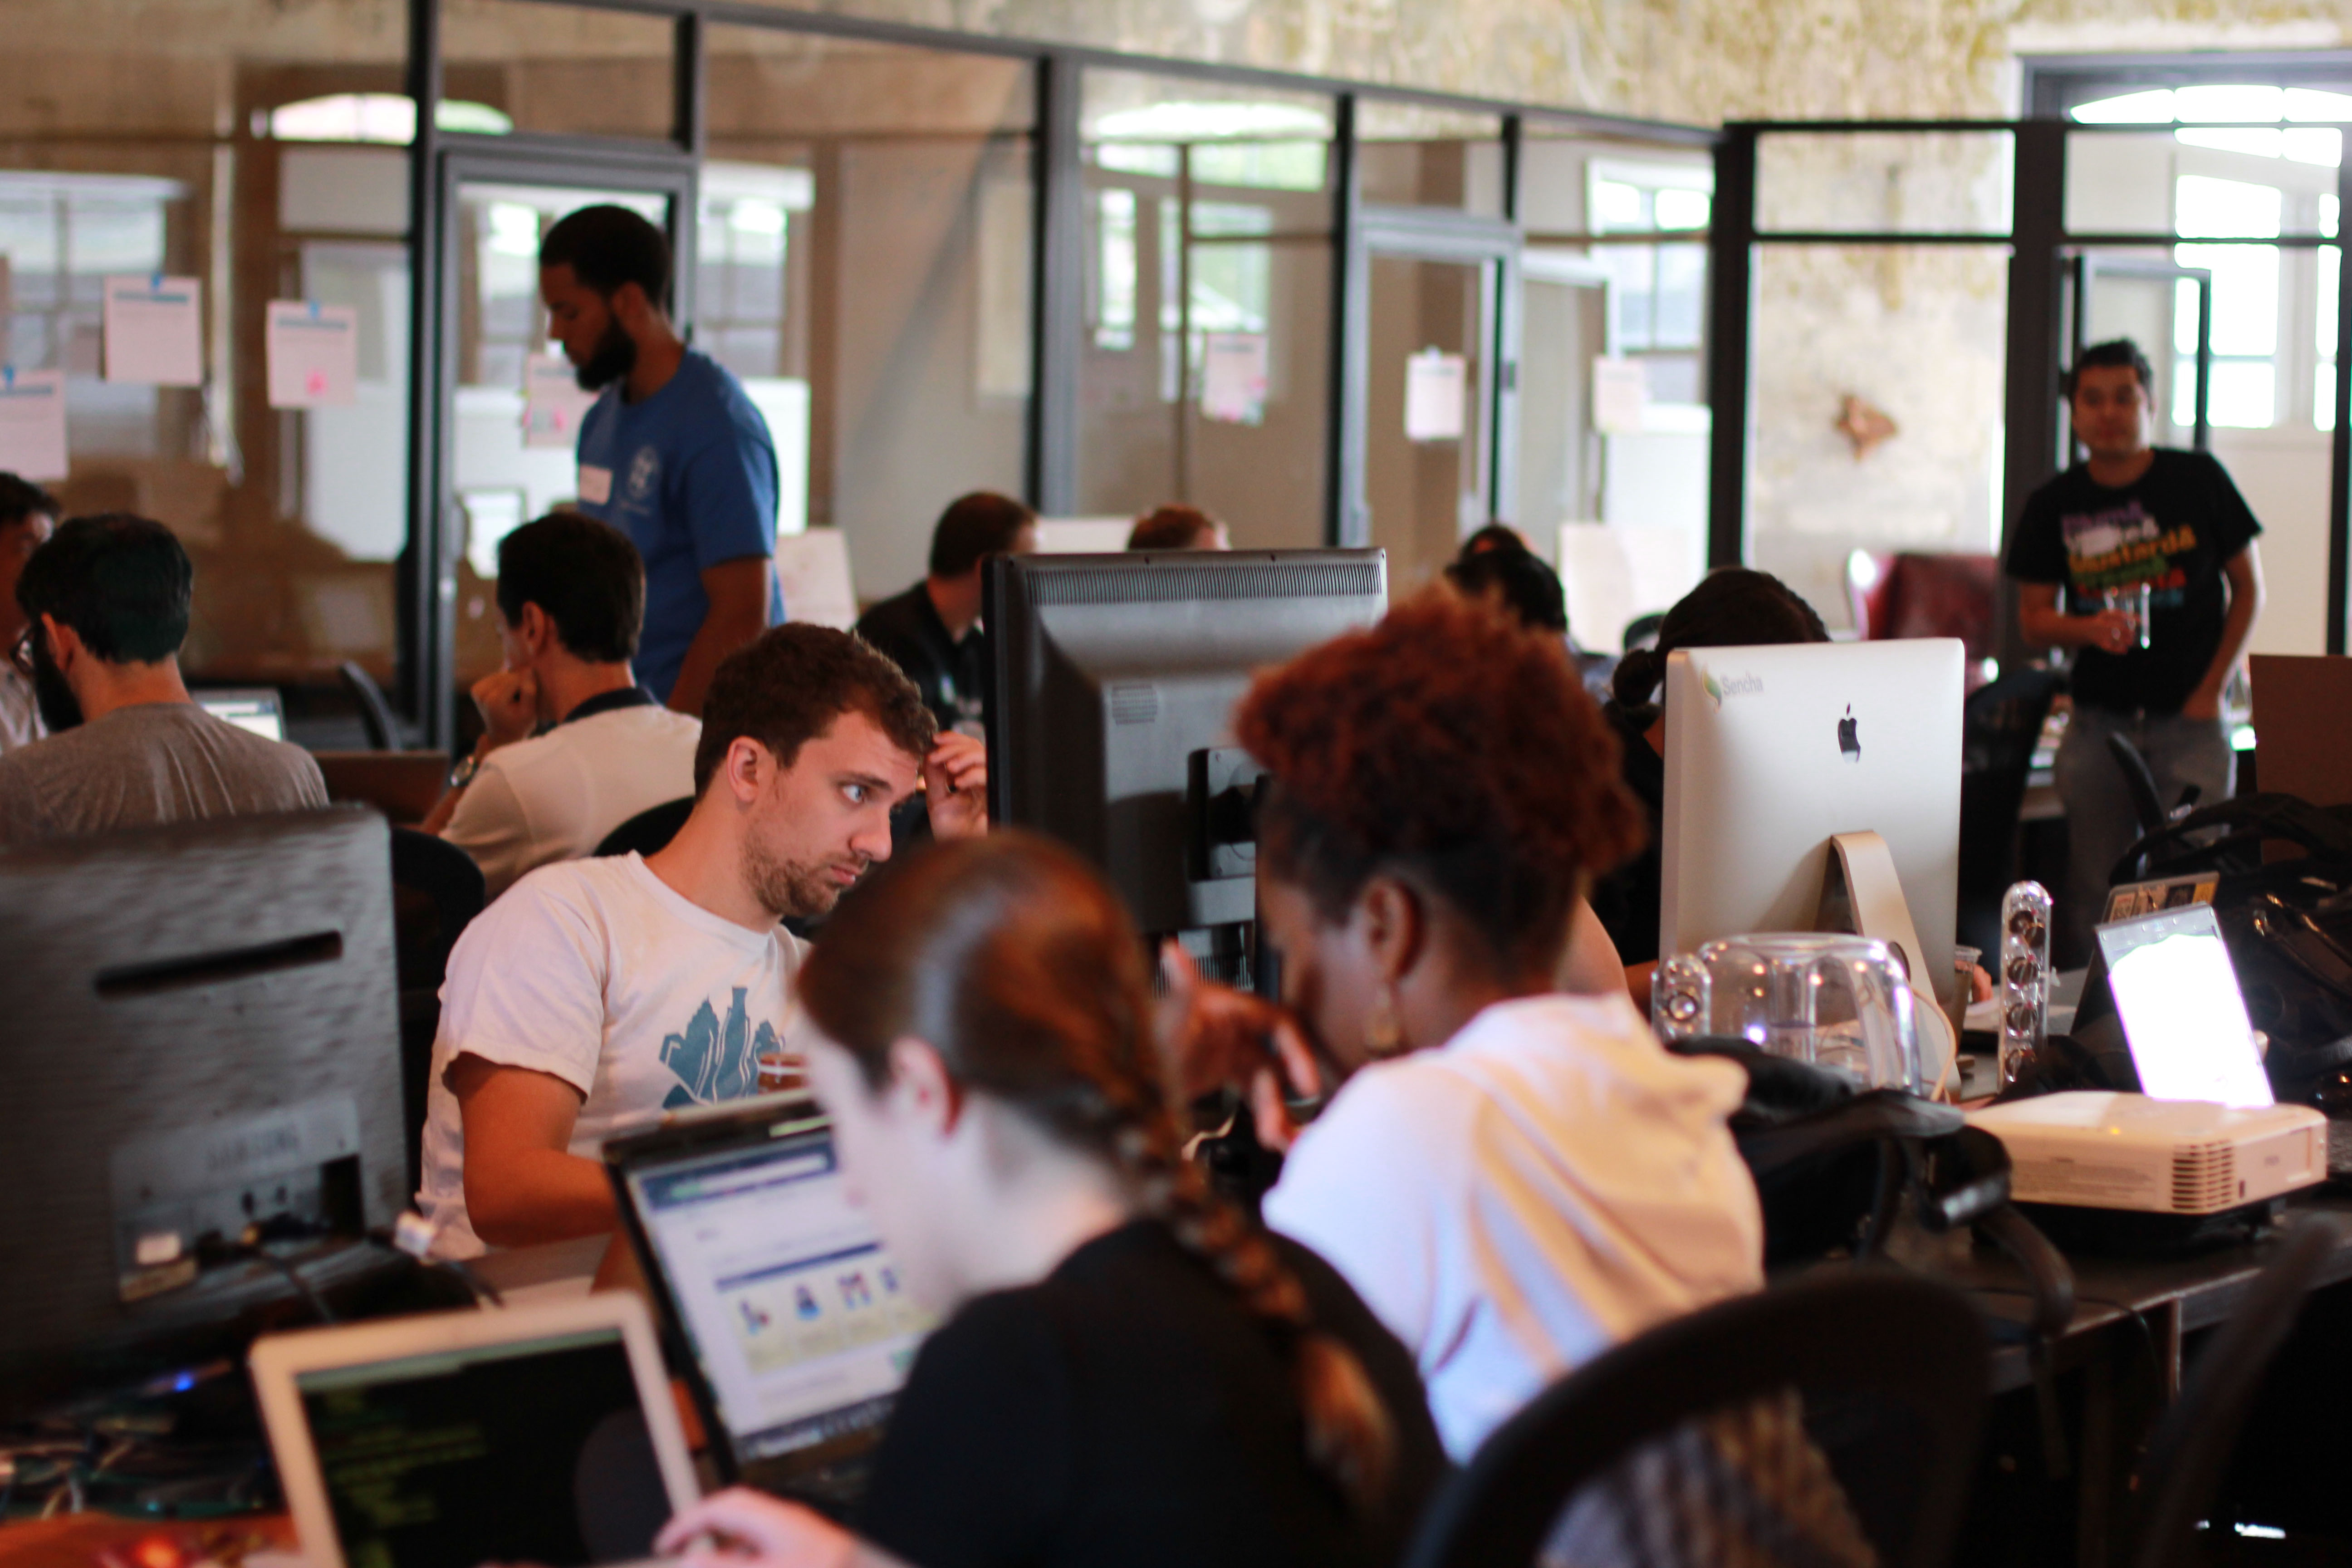 More than 40 people came together and worked on Apps to help improve SEPTA's service.